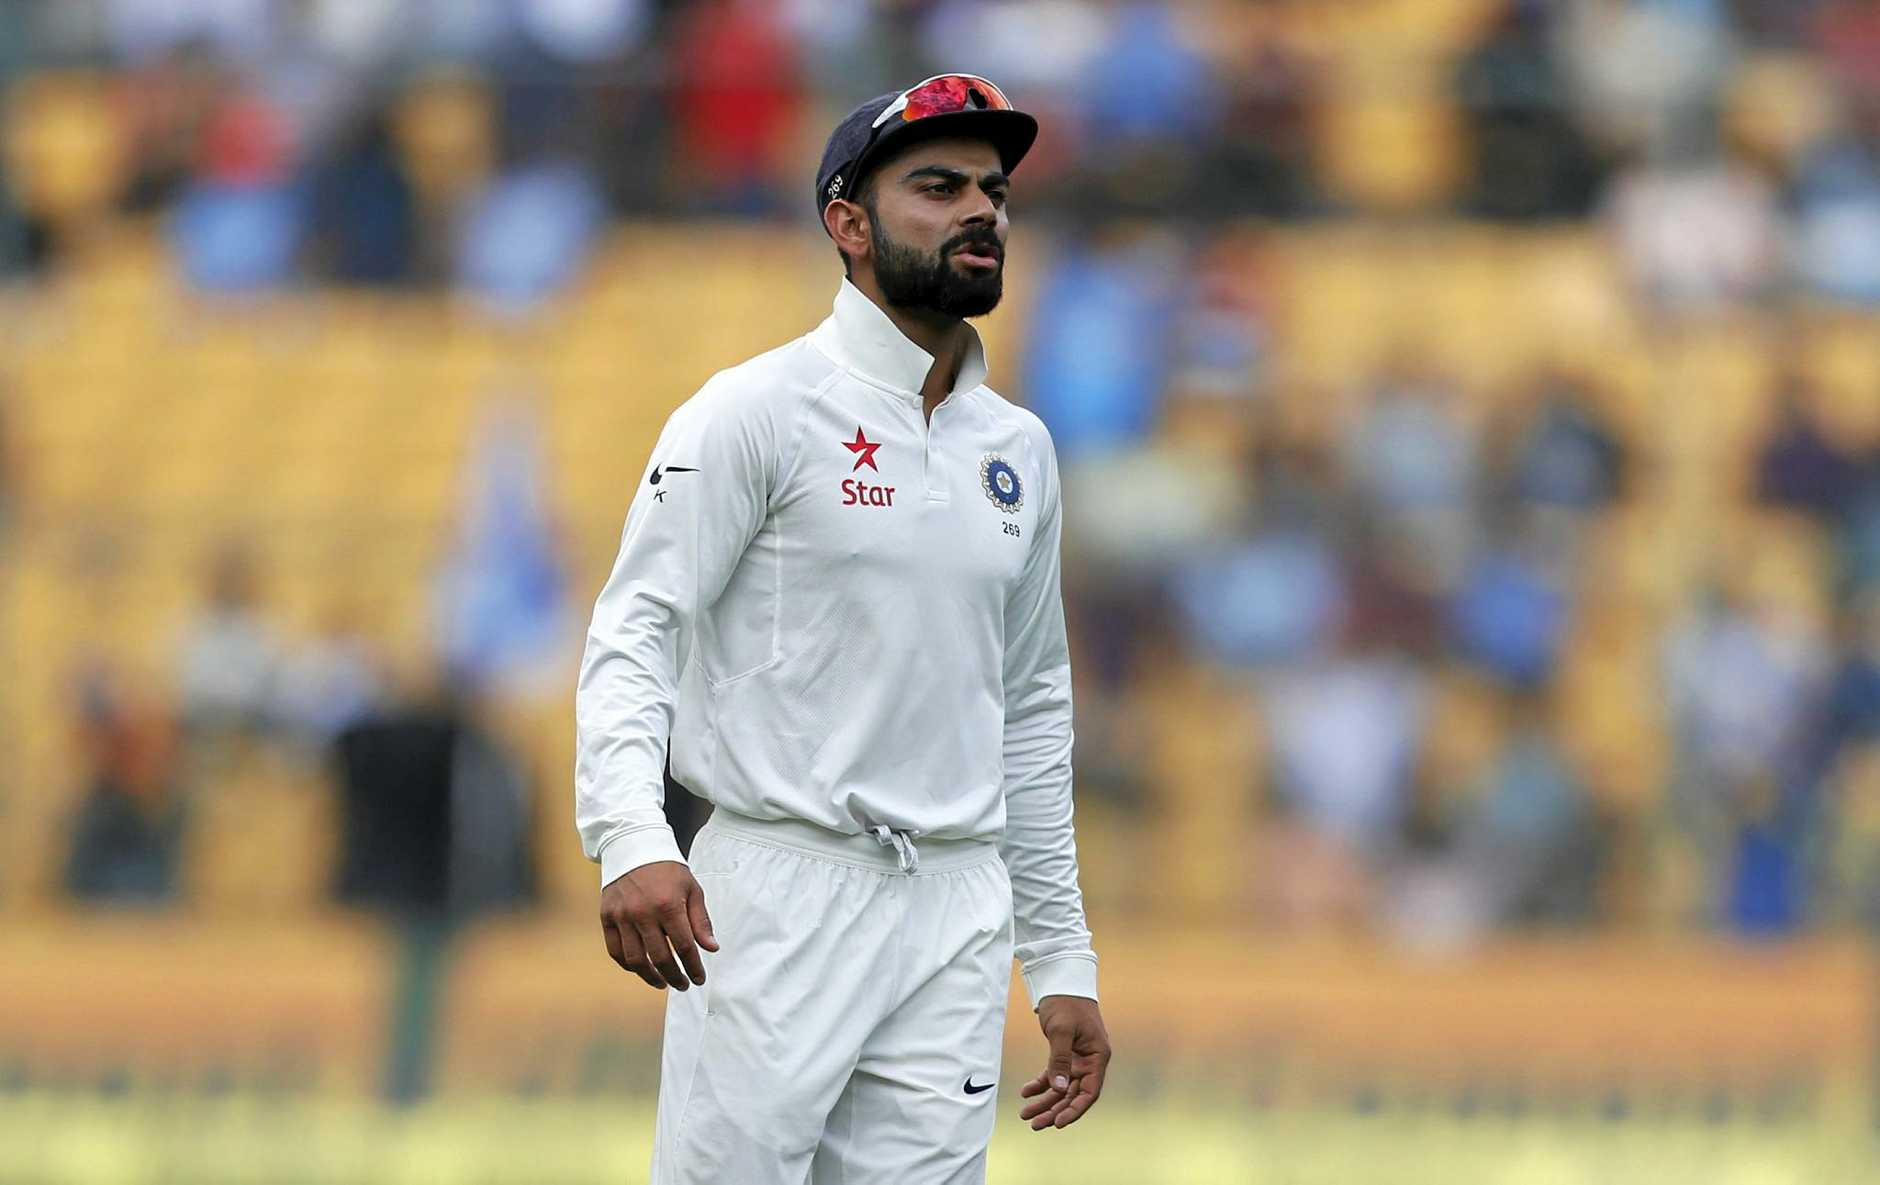 India's captain Virat Kohli was embroiled in DRS controversy during the second Test.